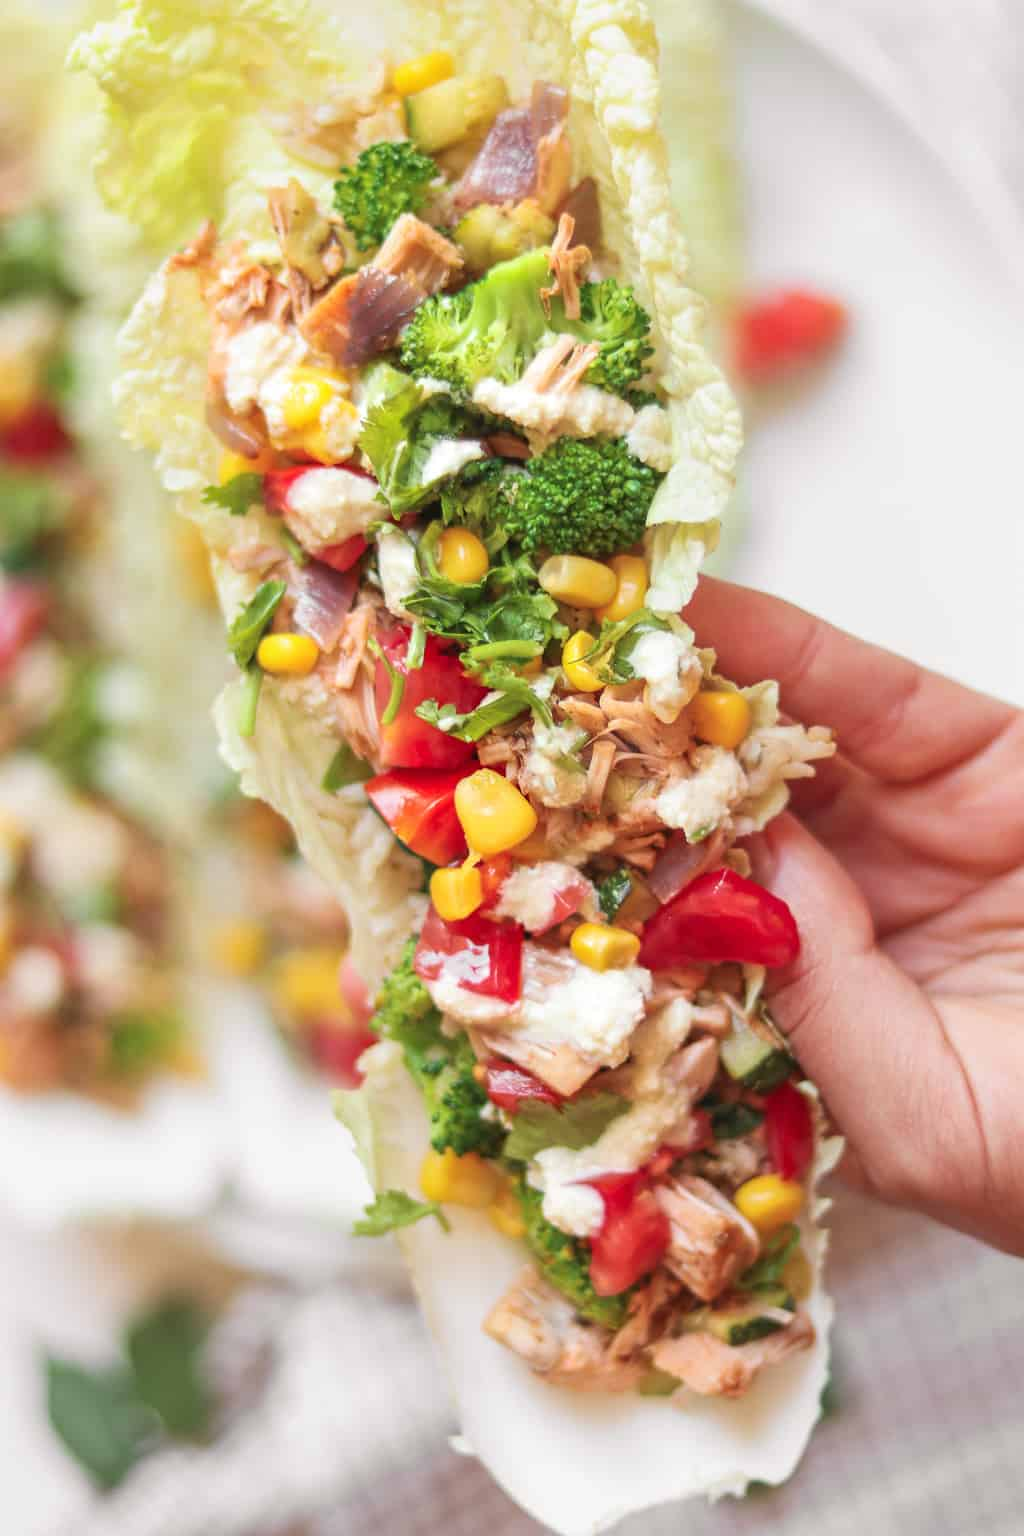 A vegan lettuce wrap filled with jackfruit, sweetcorn, brown rice and a cashew dressing